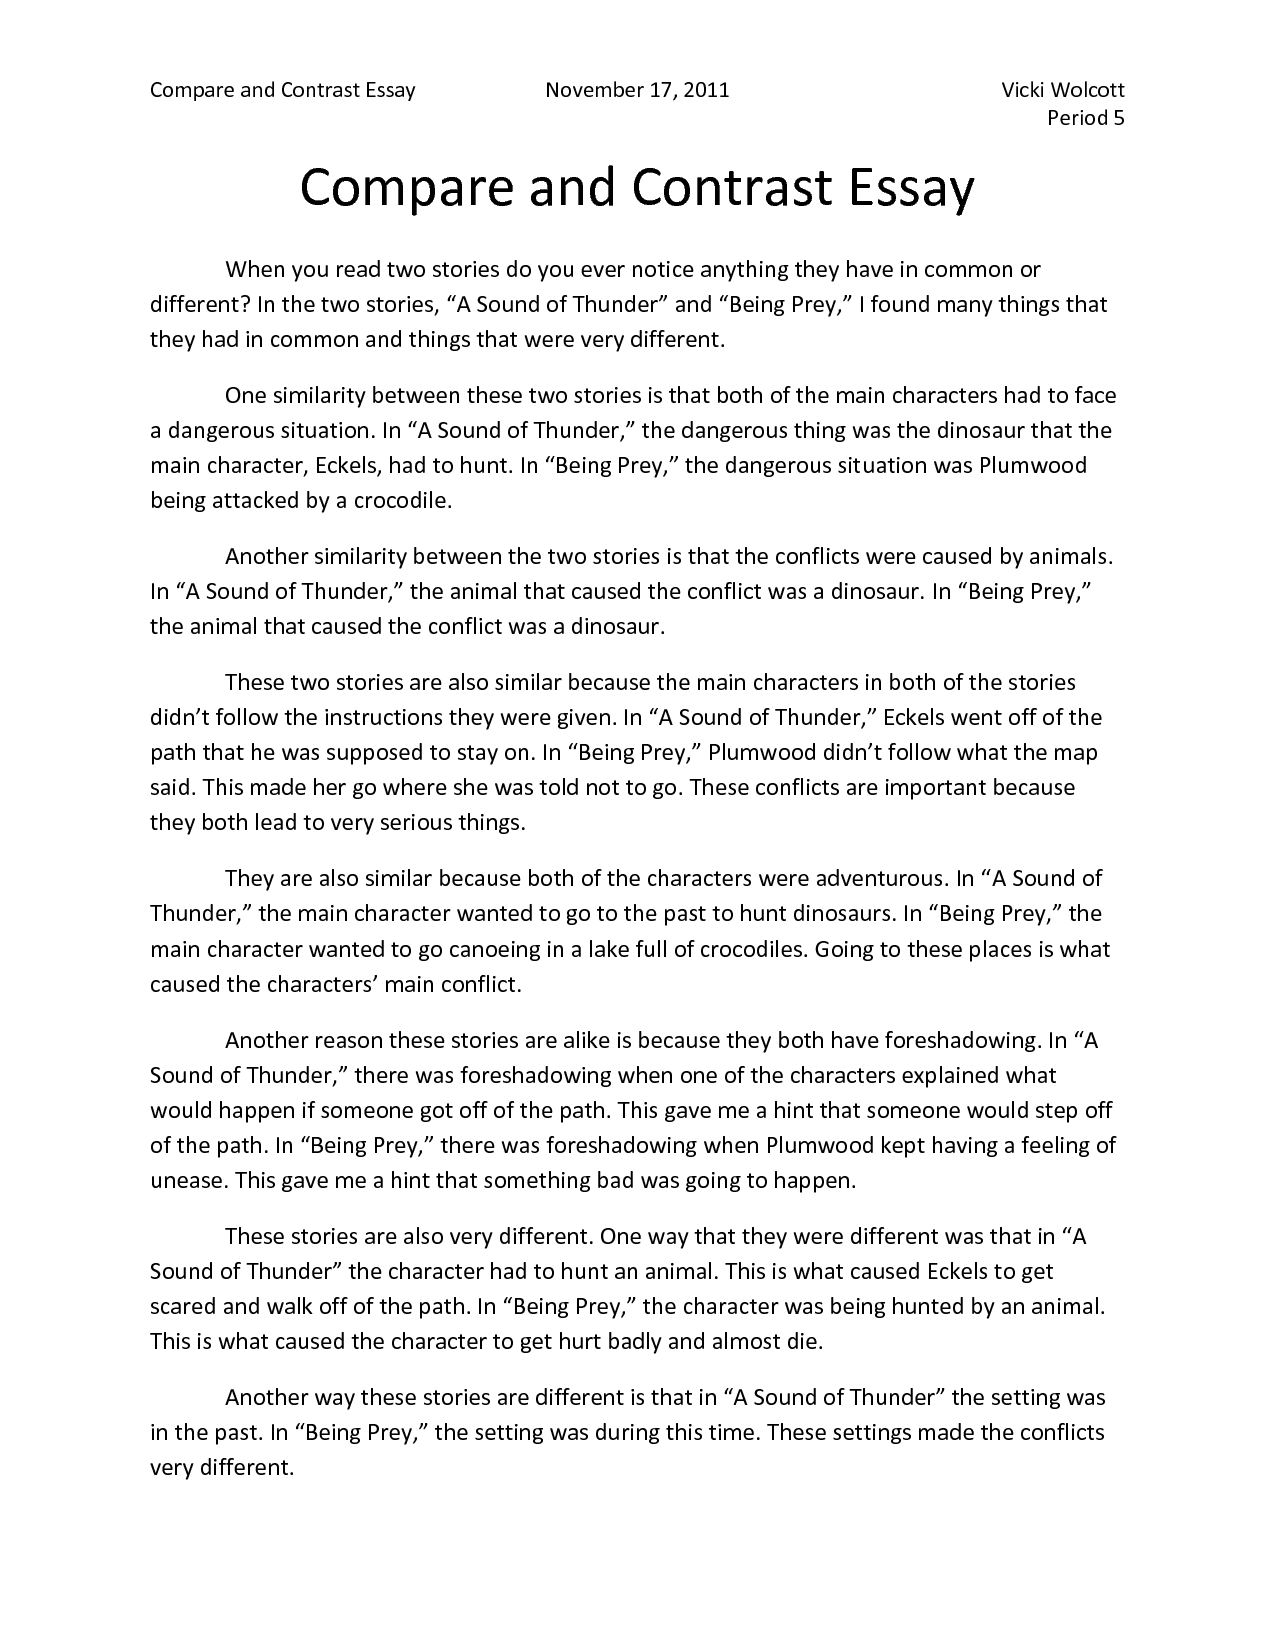 010 Essay Example Compare Good Cover Letter Samples Comparative Outlinend Contrast Made Large Flexib Sample Pdf Writing How To Conclude Fantastic A And Start Comparison Write Begin Full